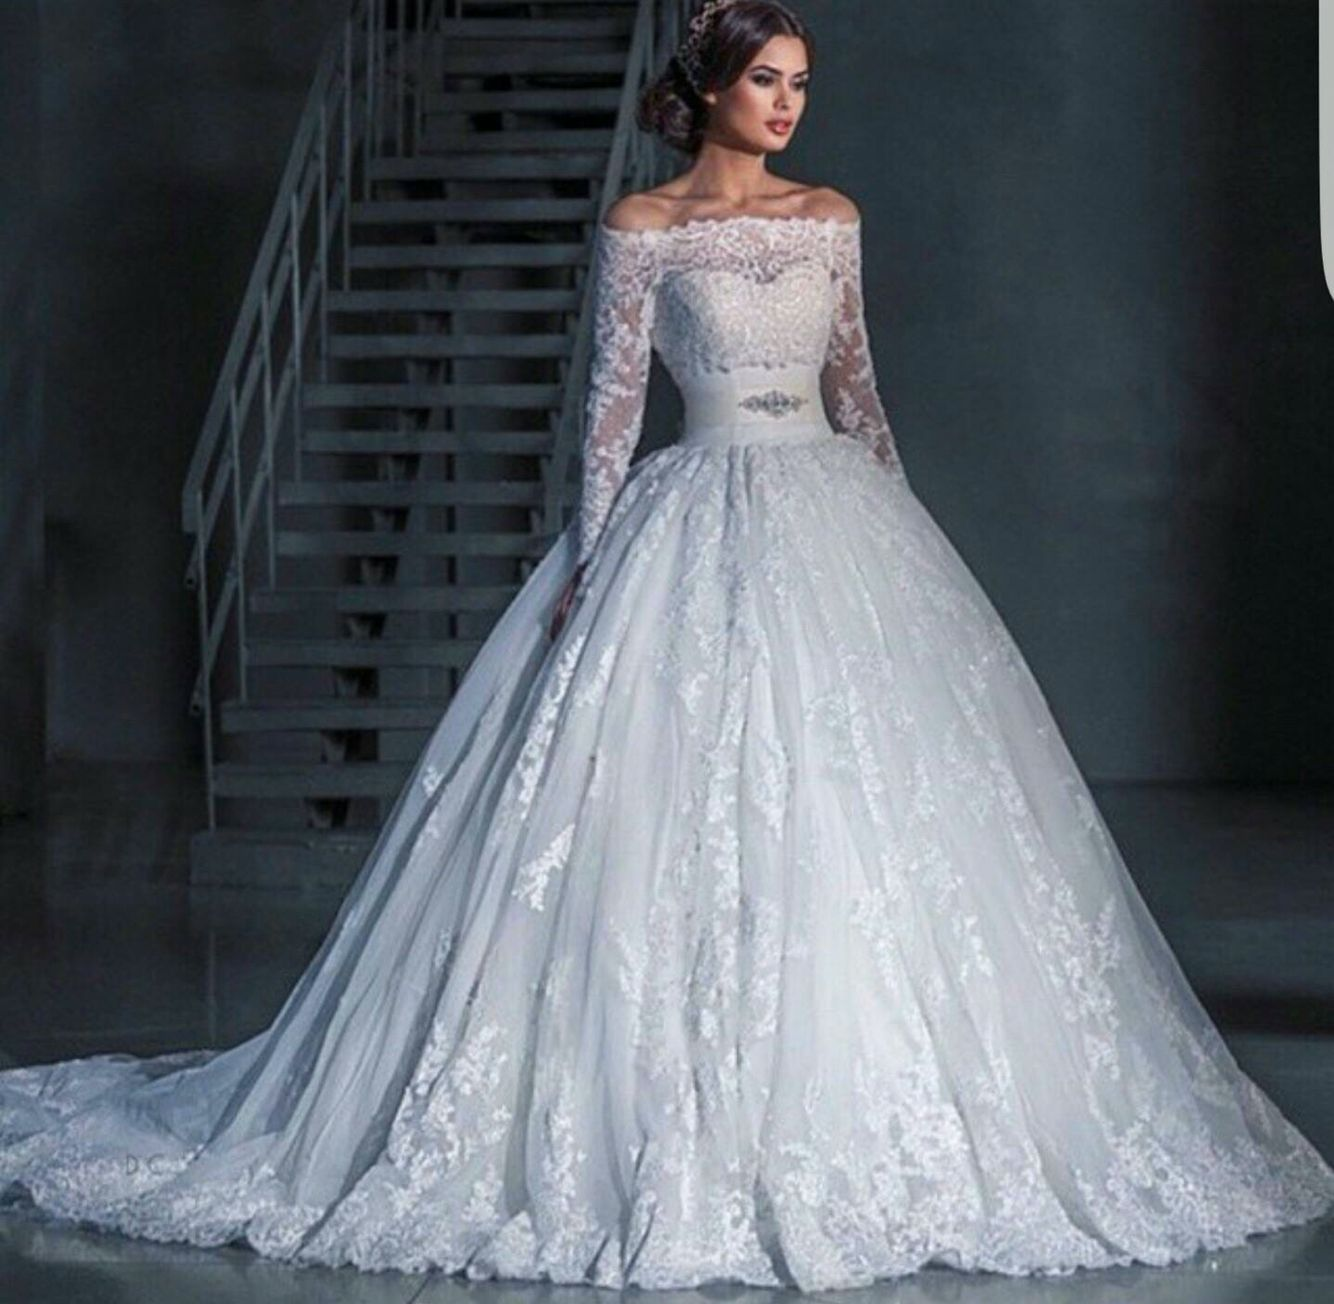 Wedding gown | weddings and dream houses make me happy | Pinterest ...